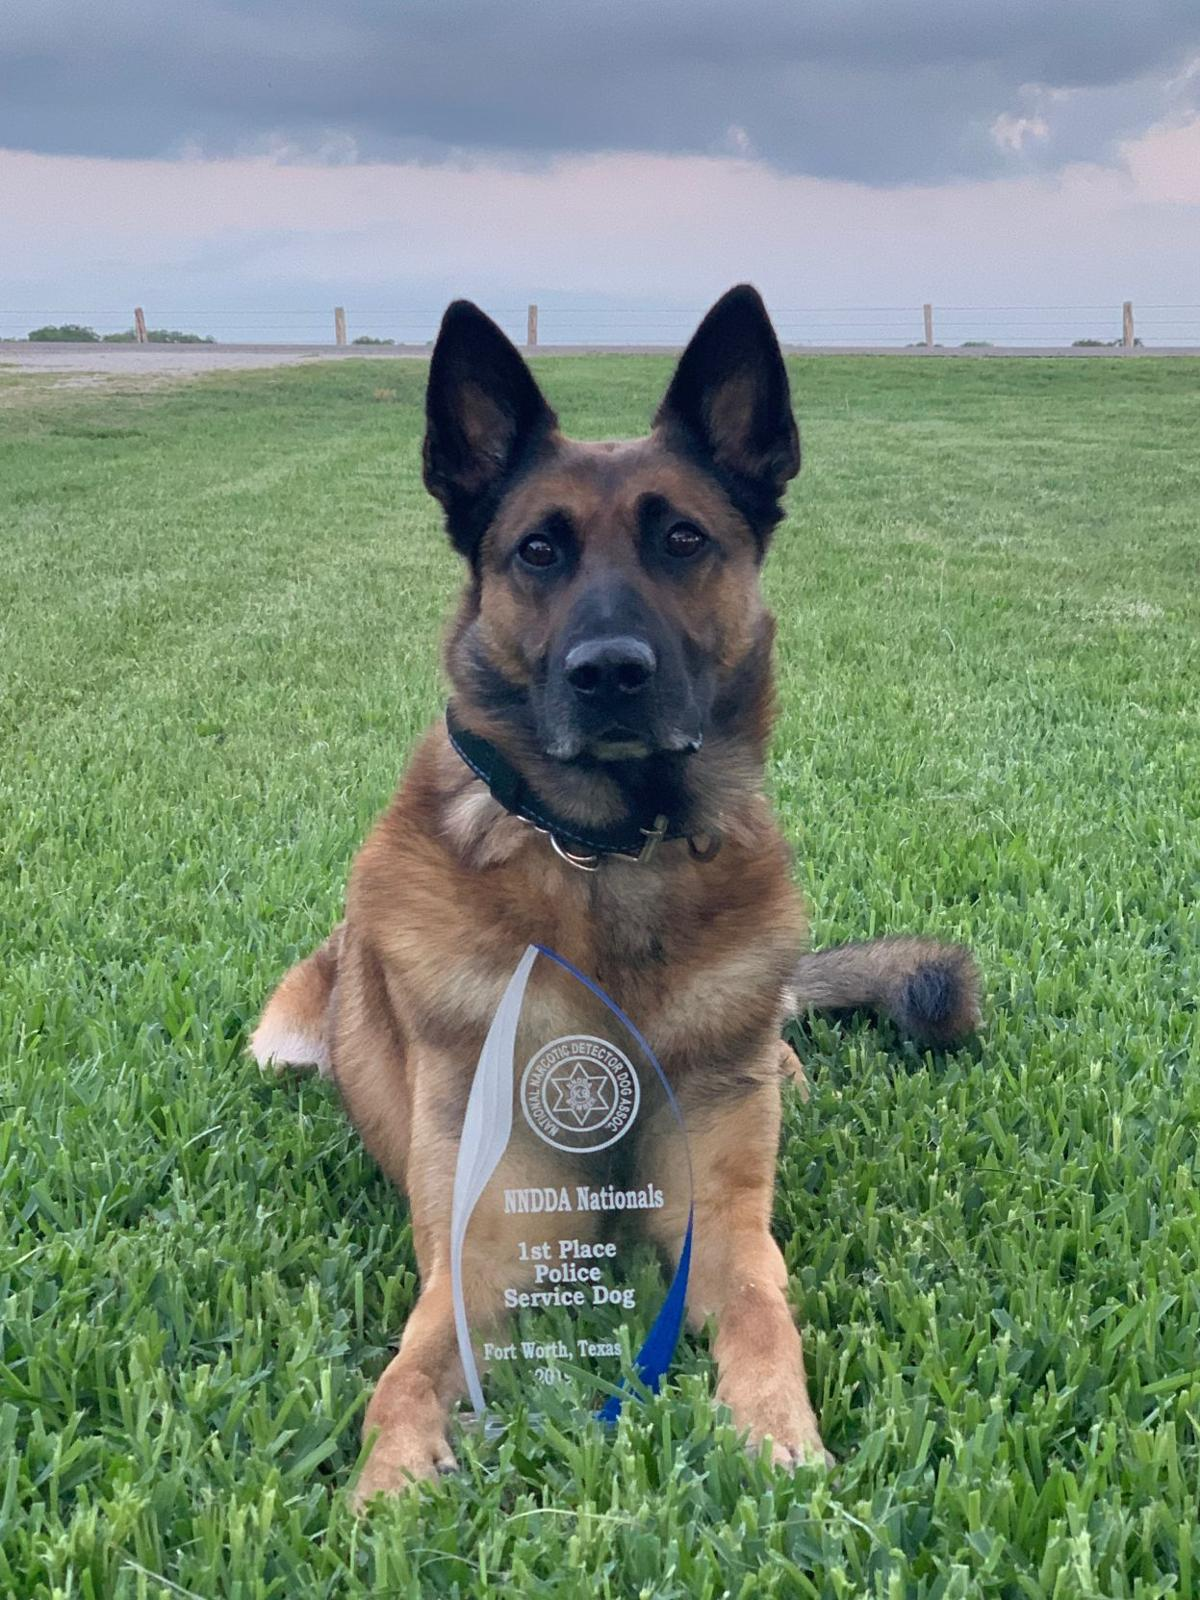 e38325024bfe For Victoria police K-9 and handler, love is secret weapon | Crime & Courts  | victoriaadvocate.com